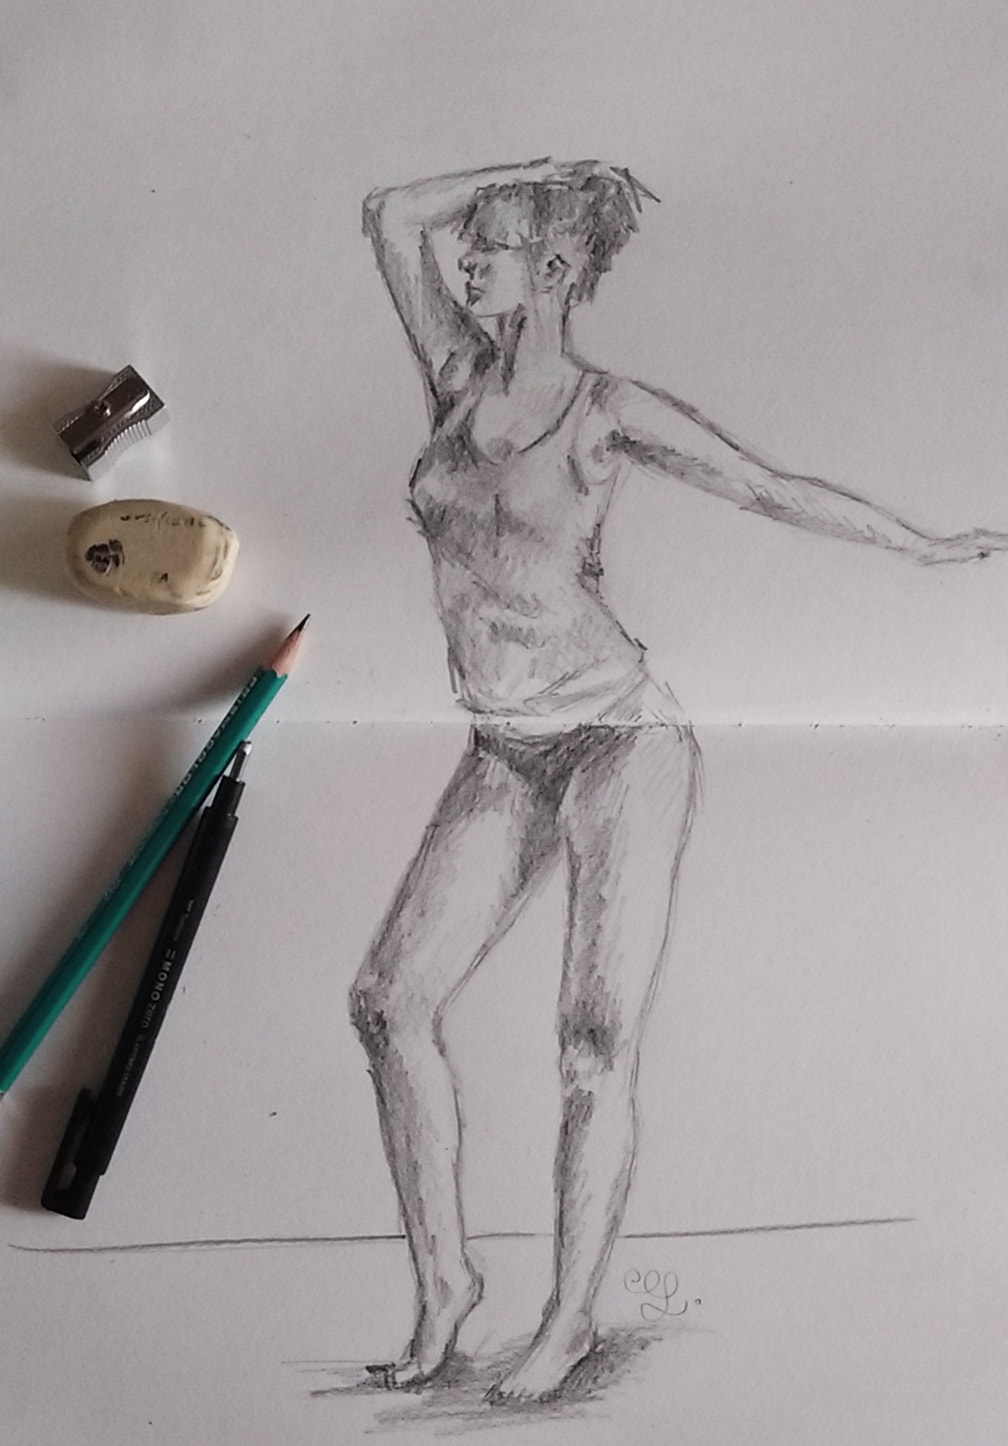 Female pose study 1. Pencil sketch by Erika Lancaster.